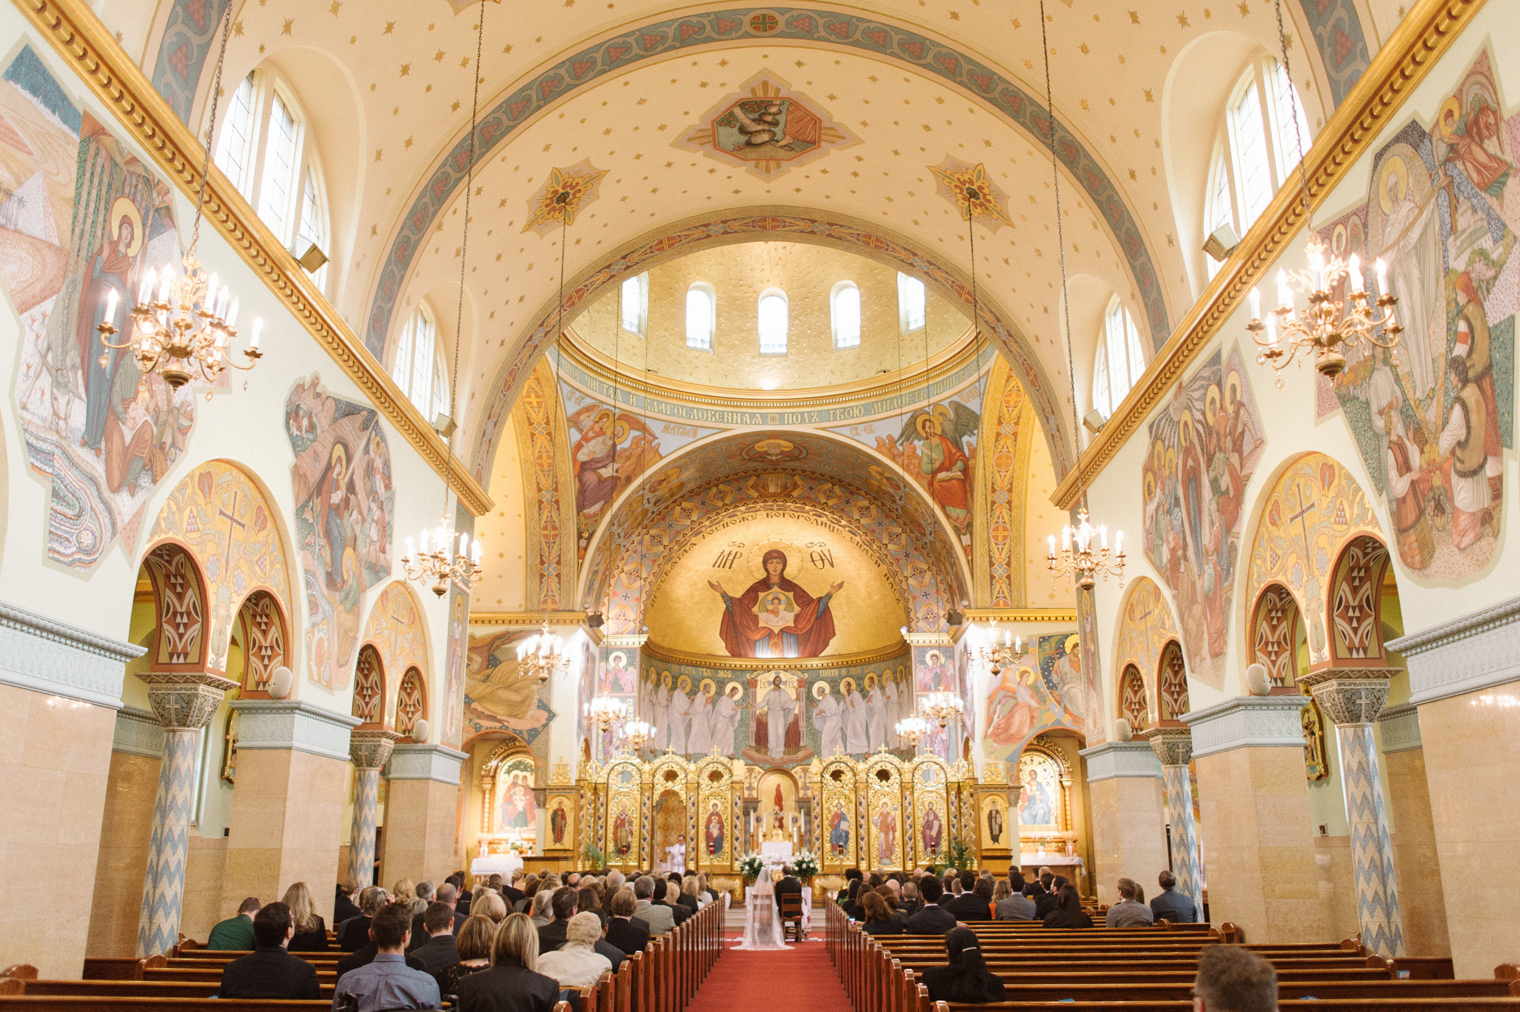 Interior of the sanctuary at Immaculate Conception Ukrainian Rite Catholic Church during a Ukrainian Orthodox Wedding Ceremony in Hamtramck Michigan by photographer Heather Jowett.